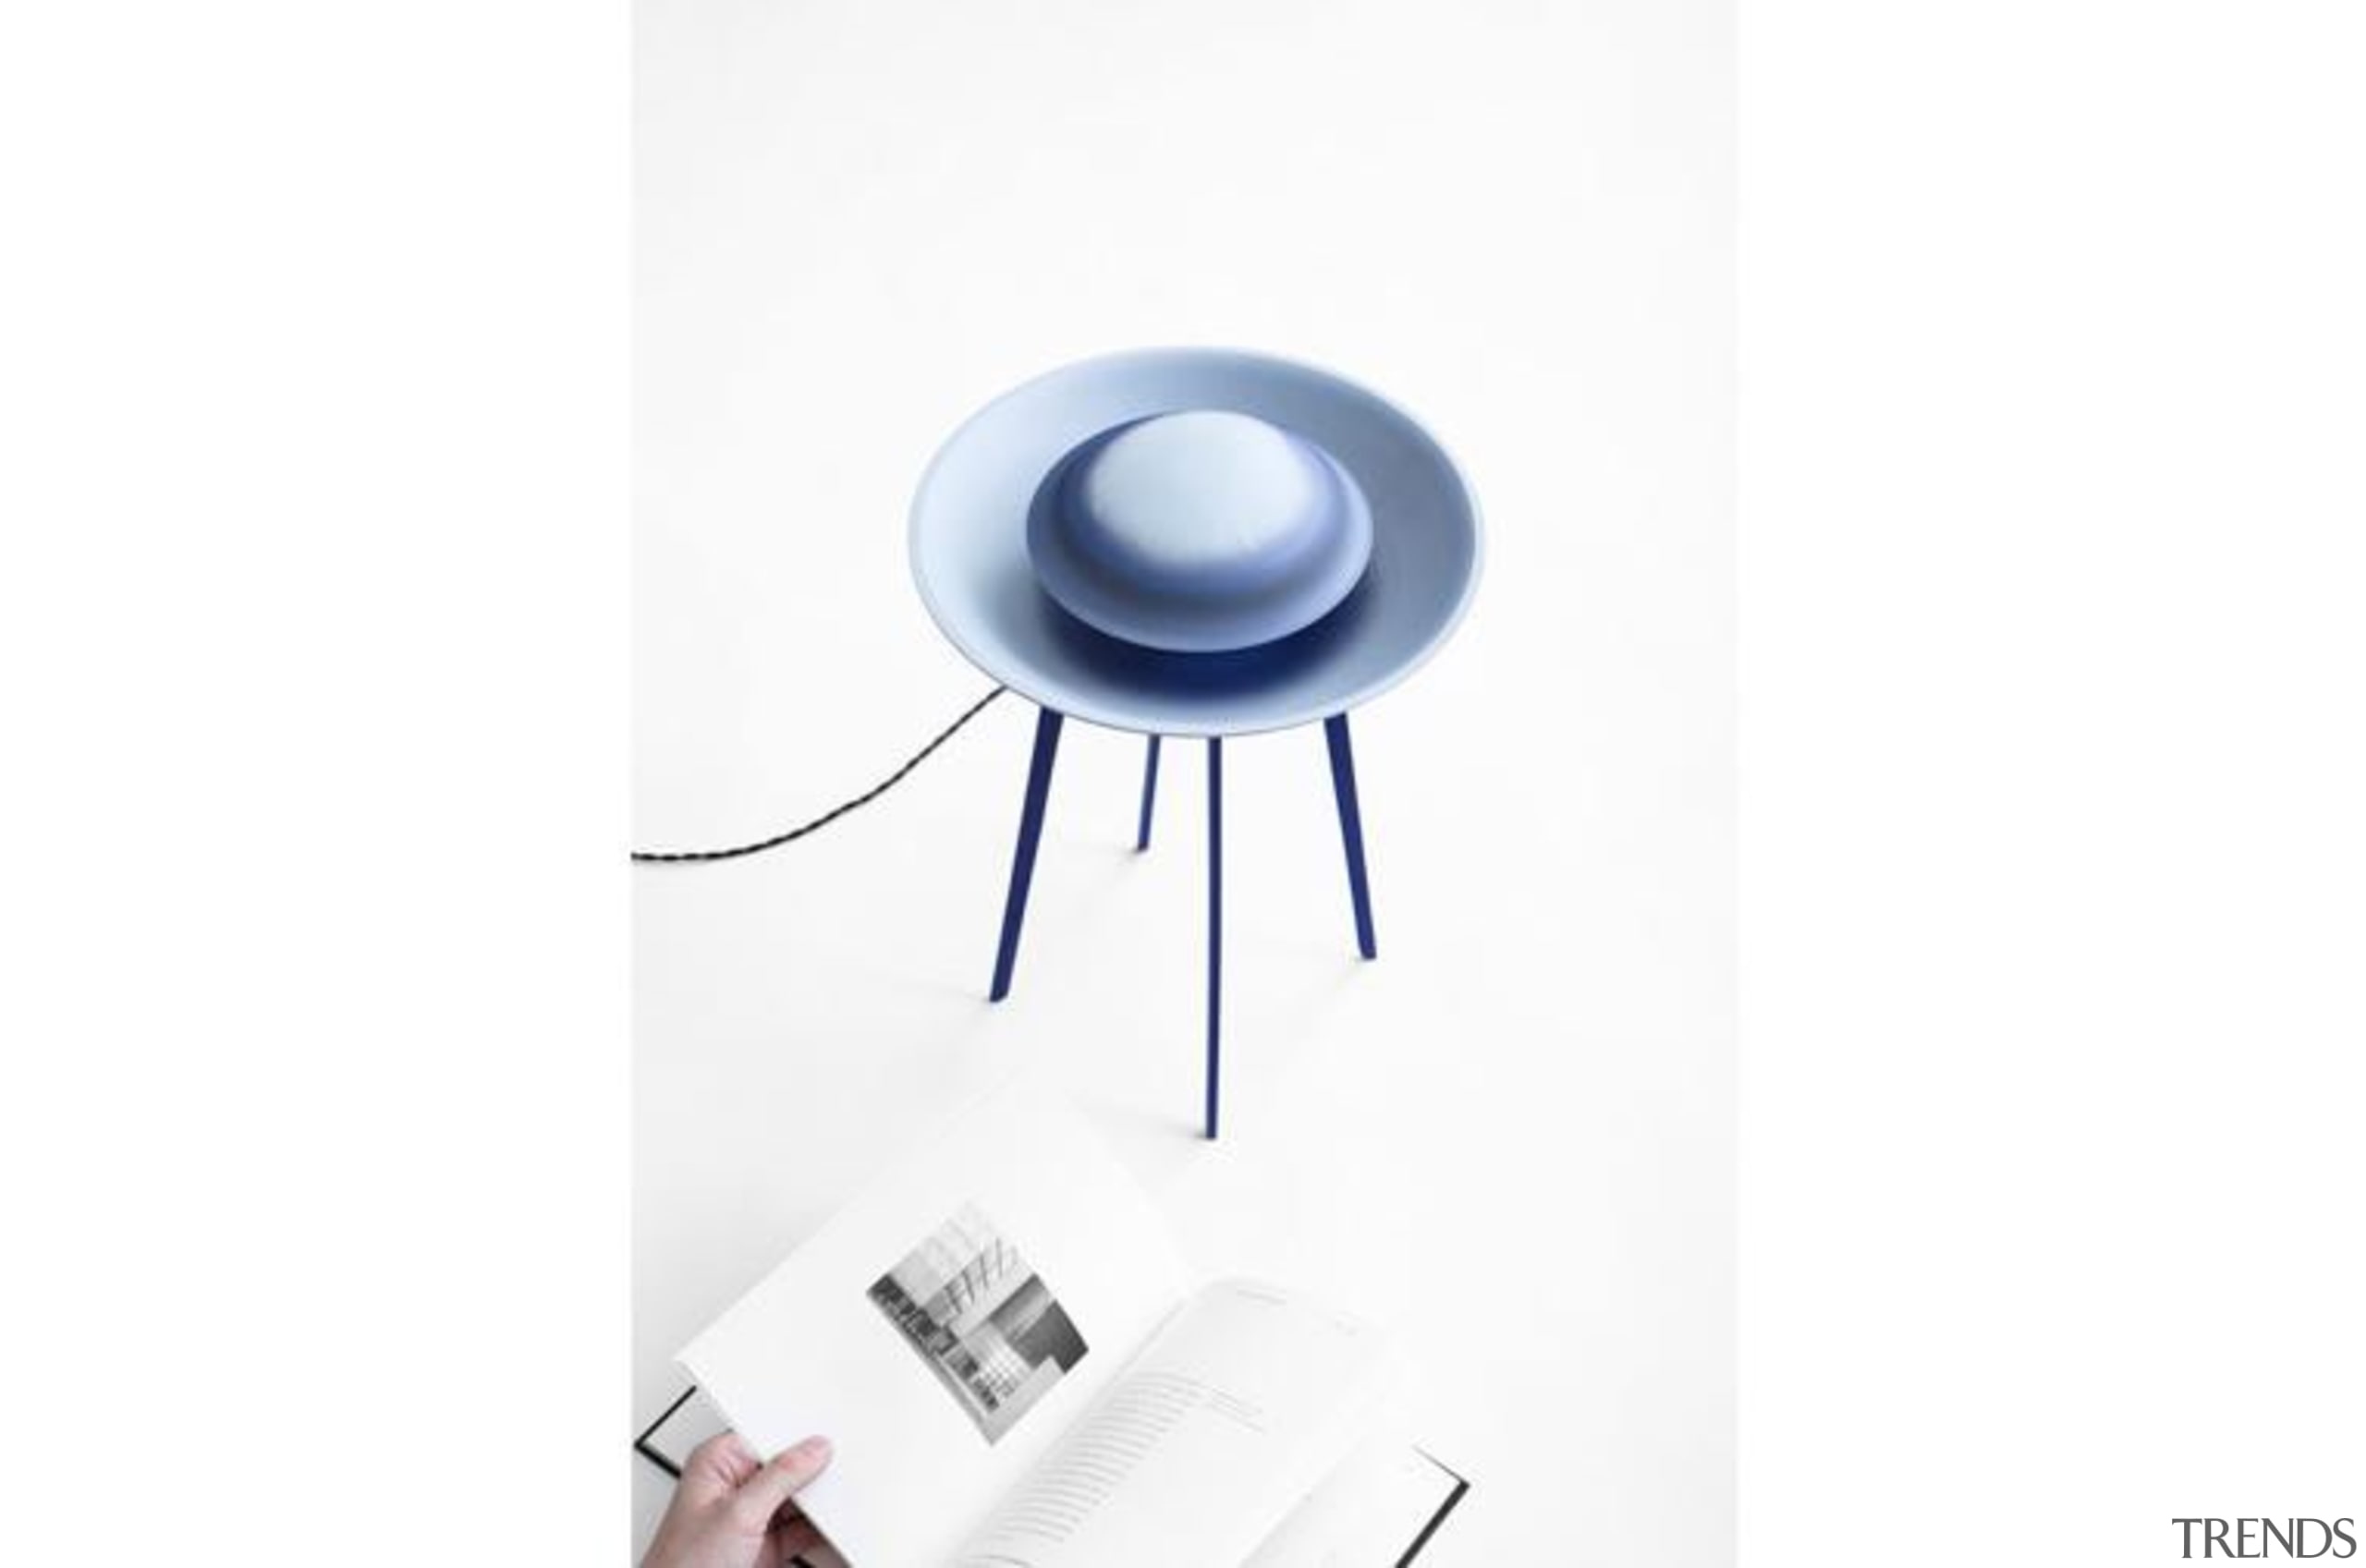 Dessus-Dessous and Dessous-dessus are two lamps made of light fixture, lighting, product, product design, table, white